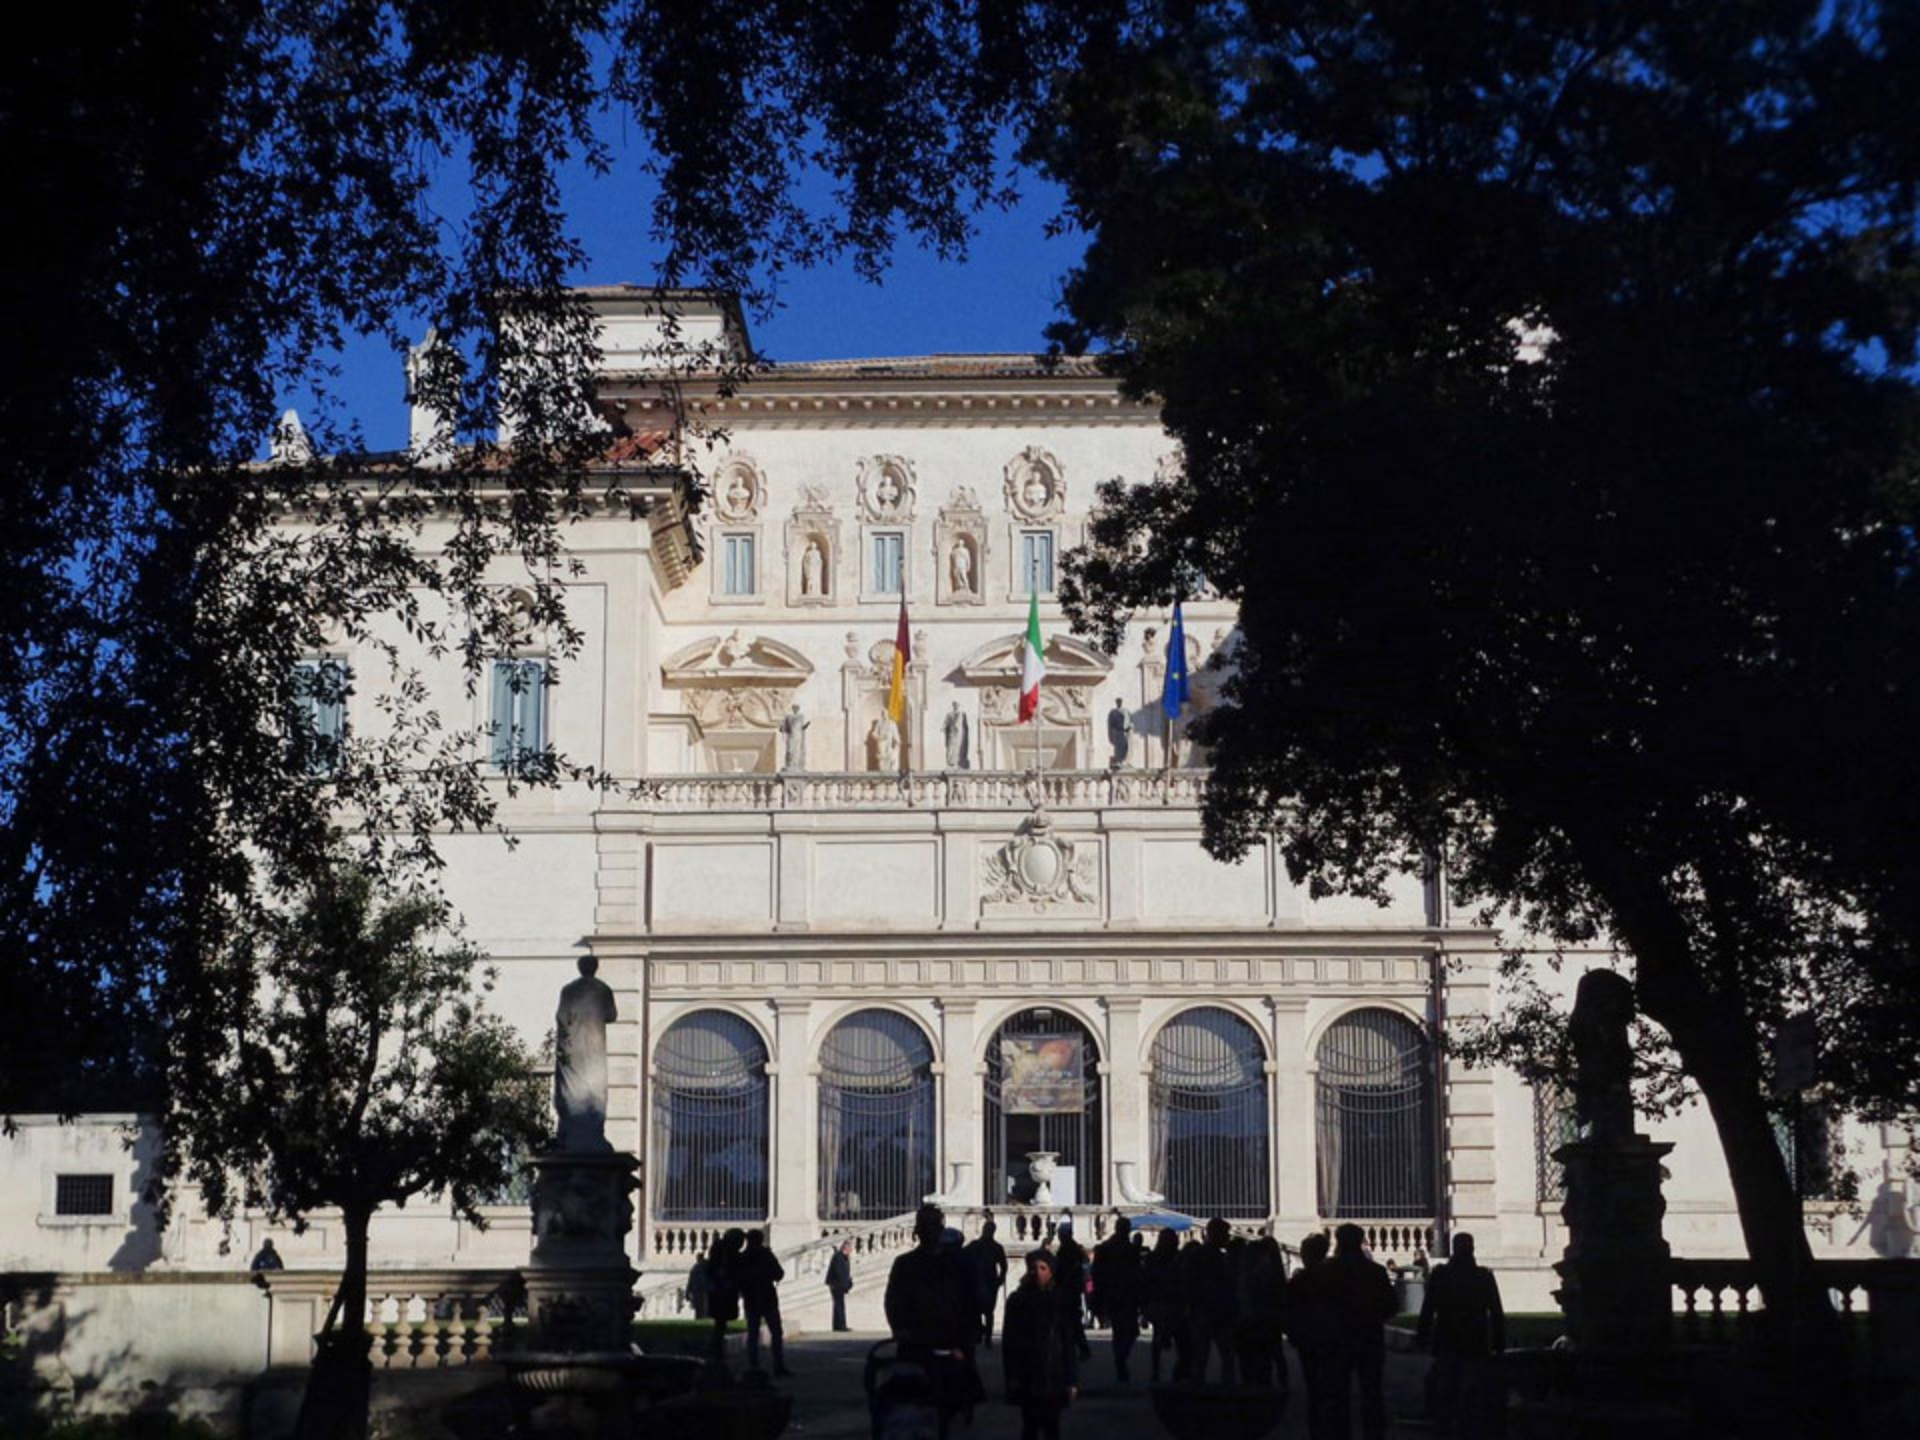 borghese-gallery_Italy-Tour-With-Theresa_04